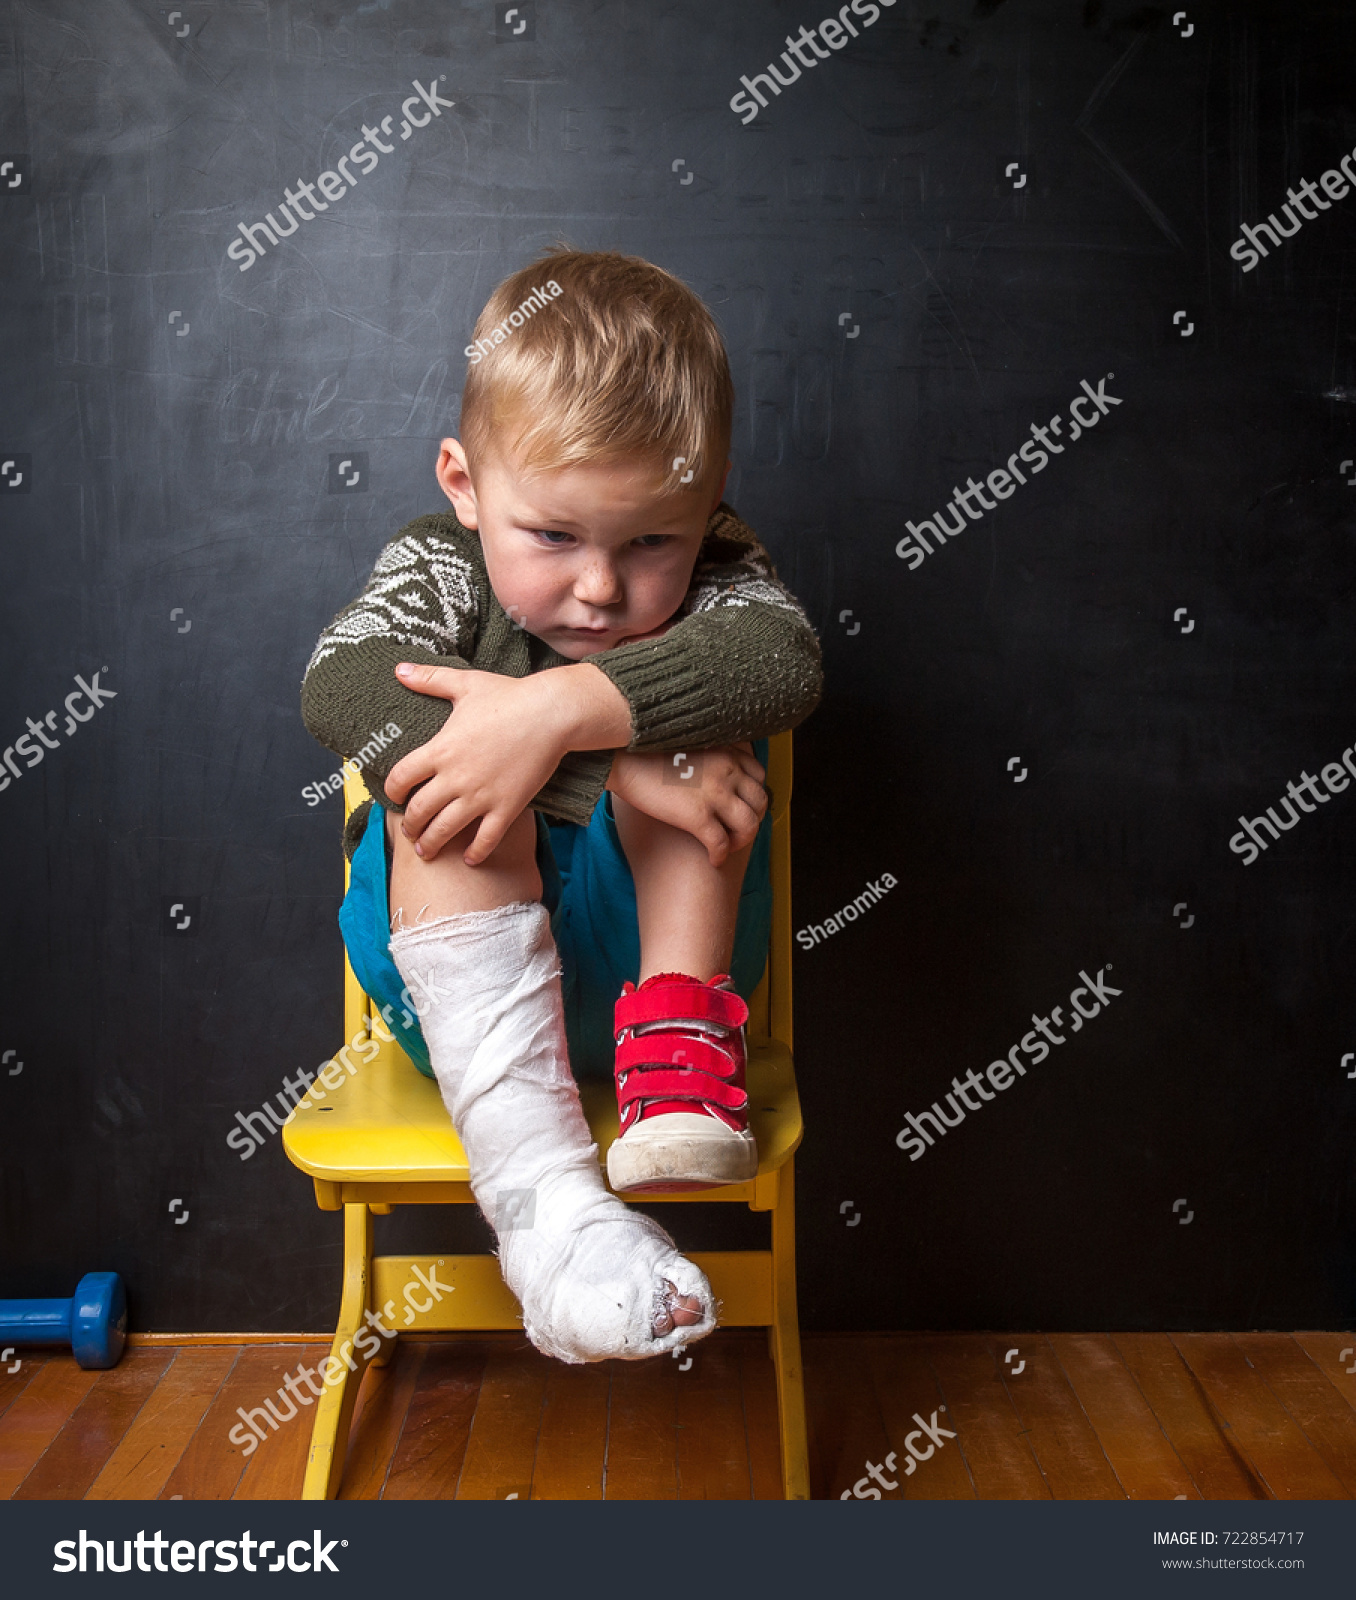 Black child sitting in chair - Boy With Broken Leg On Black Background Child In Plaster Cast Sitting On The Chair